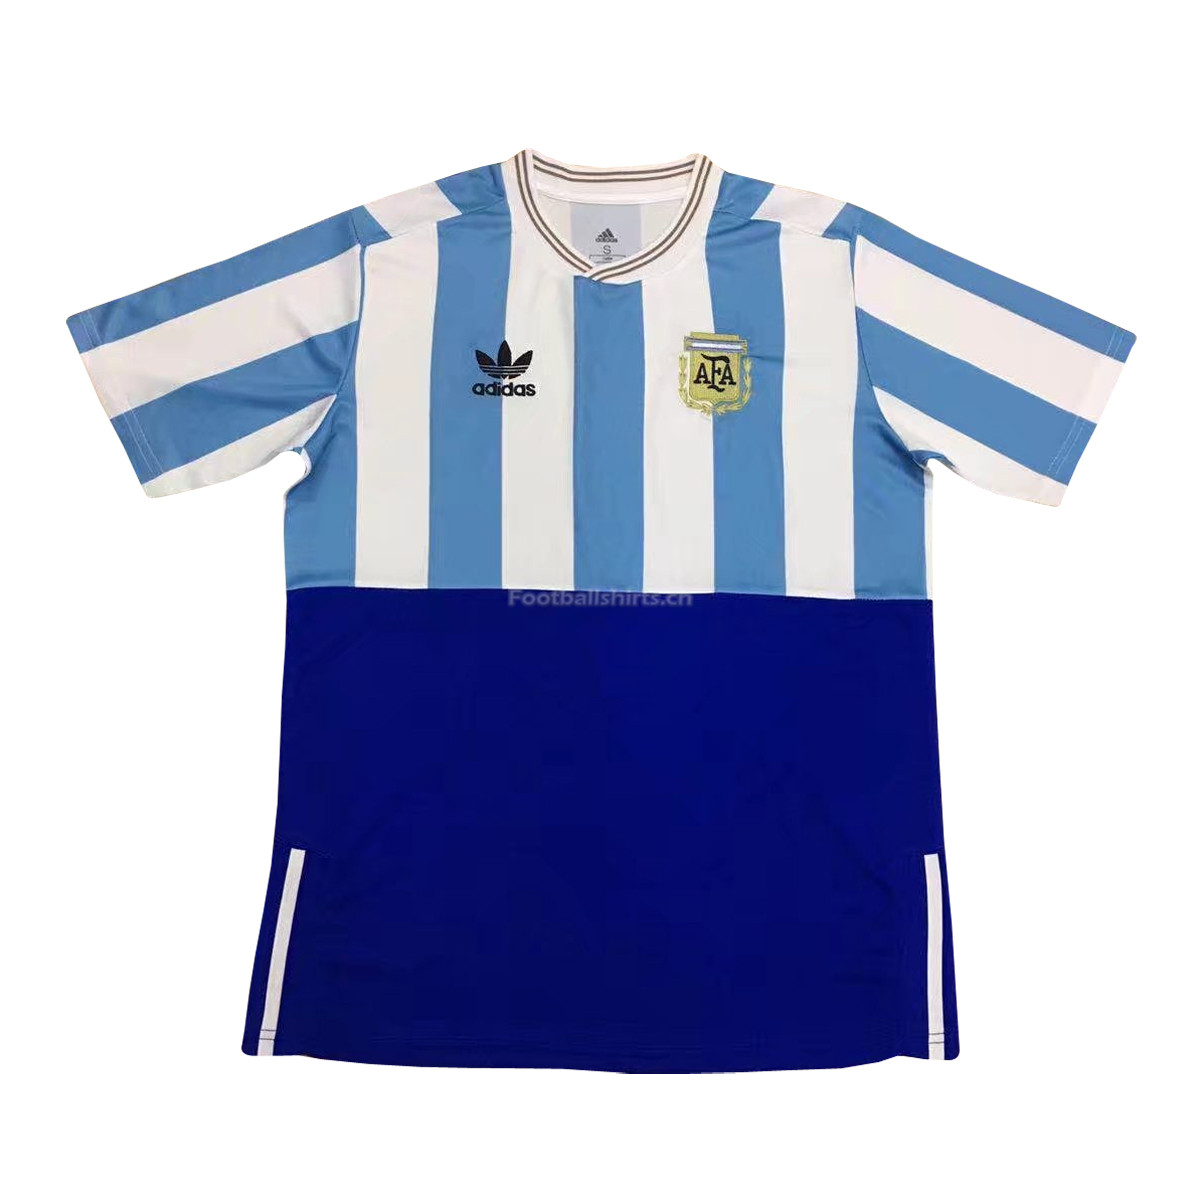 Argentina 2018 World Cup Special Edition Jersey